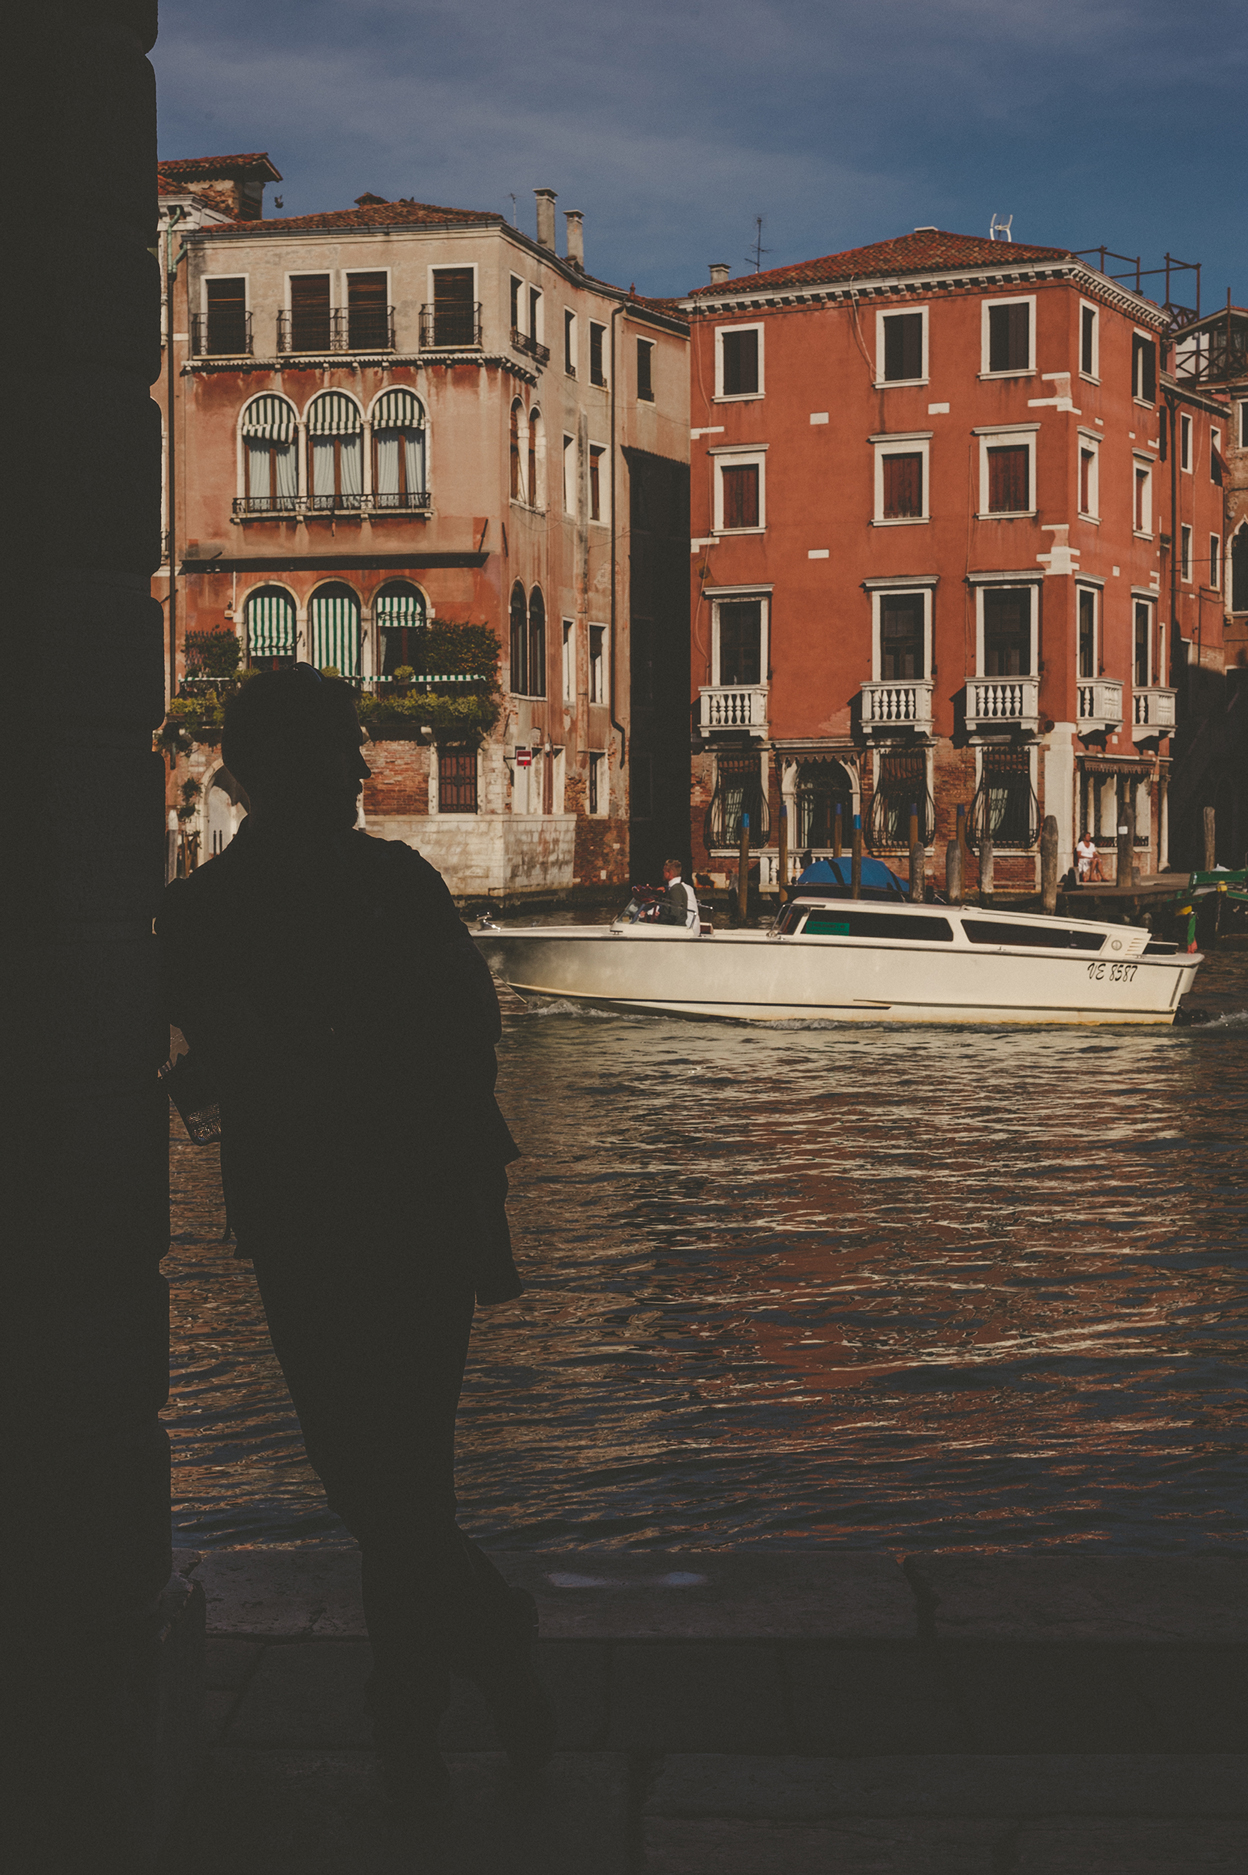 KC_Lifestyle_Photographer_OutdoorPhotography_Adventure_Photography_Venice_Italy26.jpg